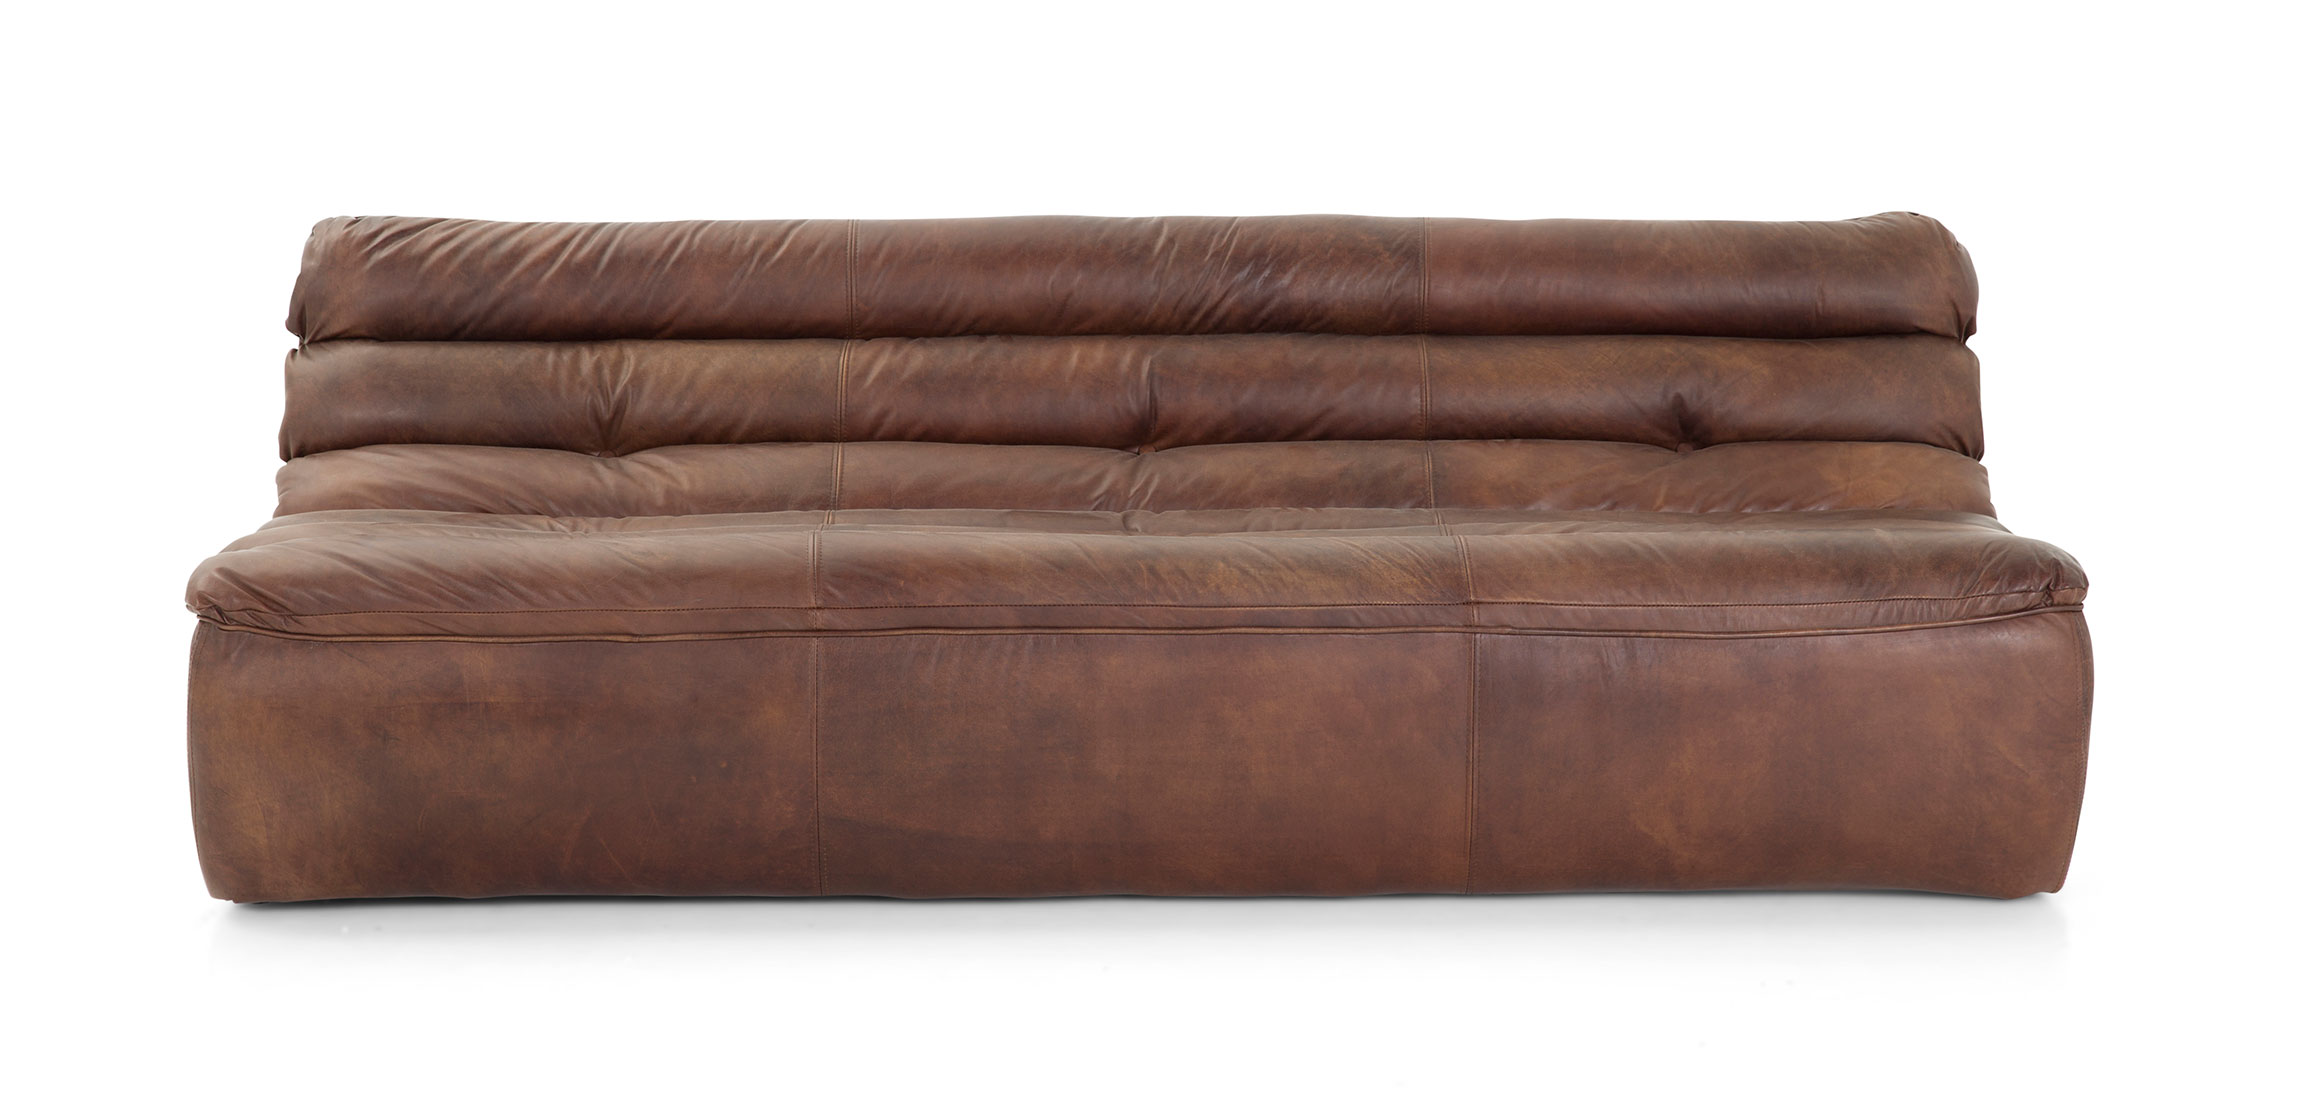 GRAN SASSO dark brown leather sofa 3 seater